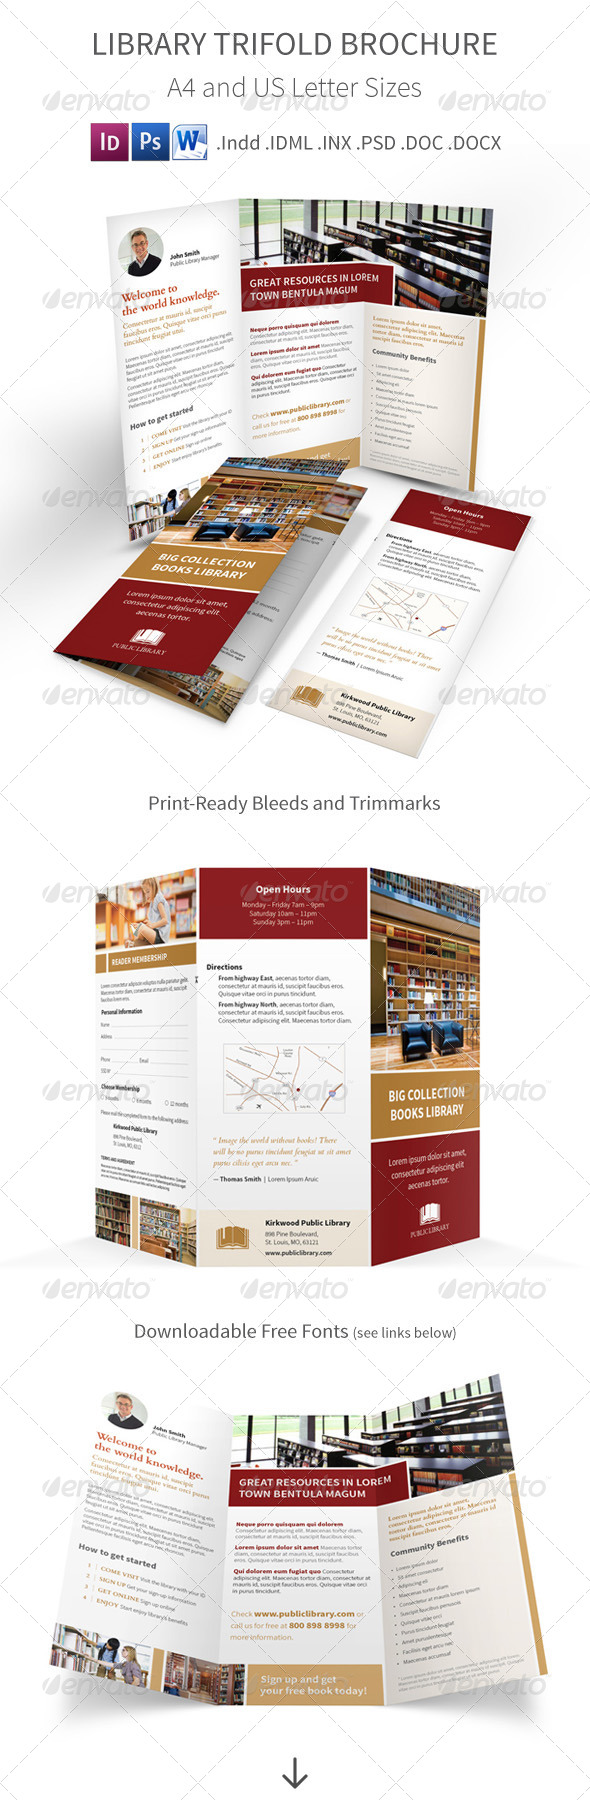 GraphicRiver Library Trifold Brochure 7891668